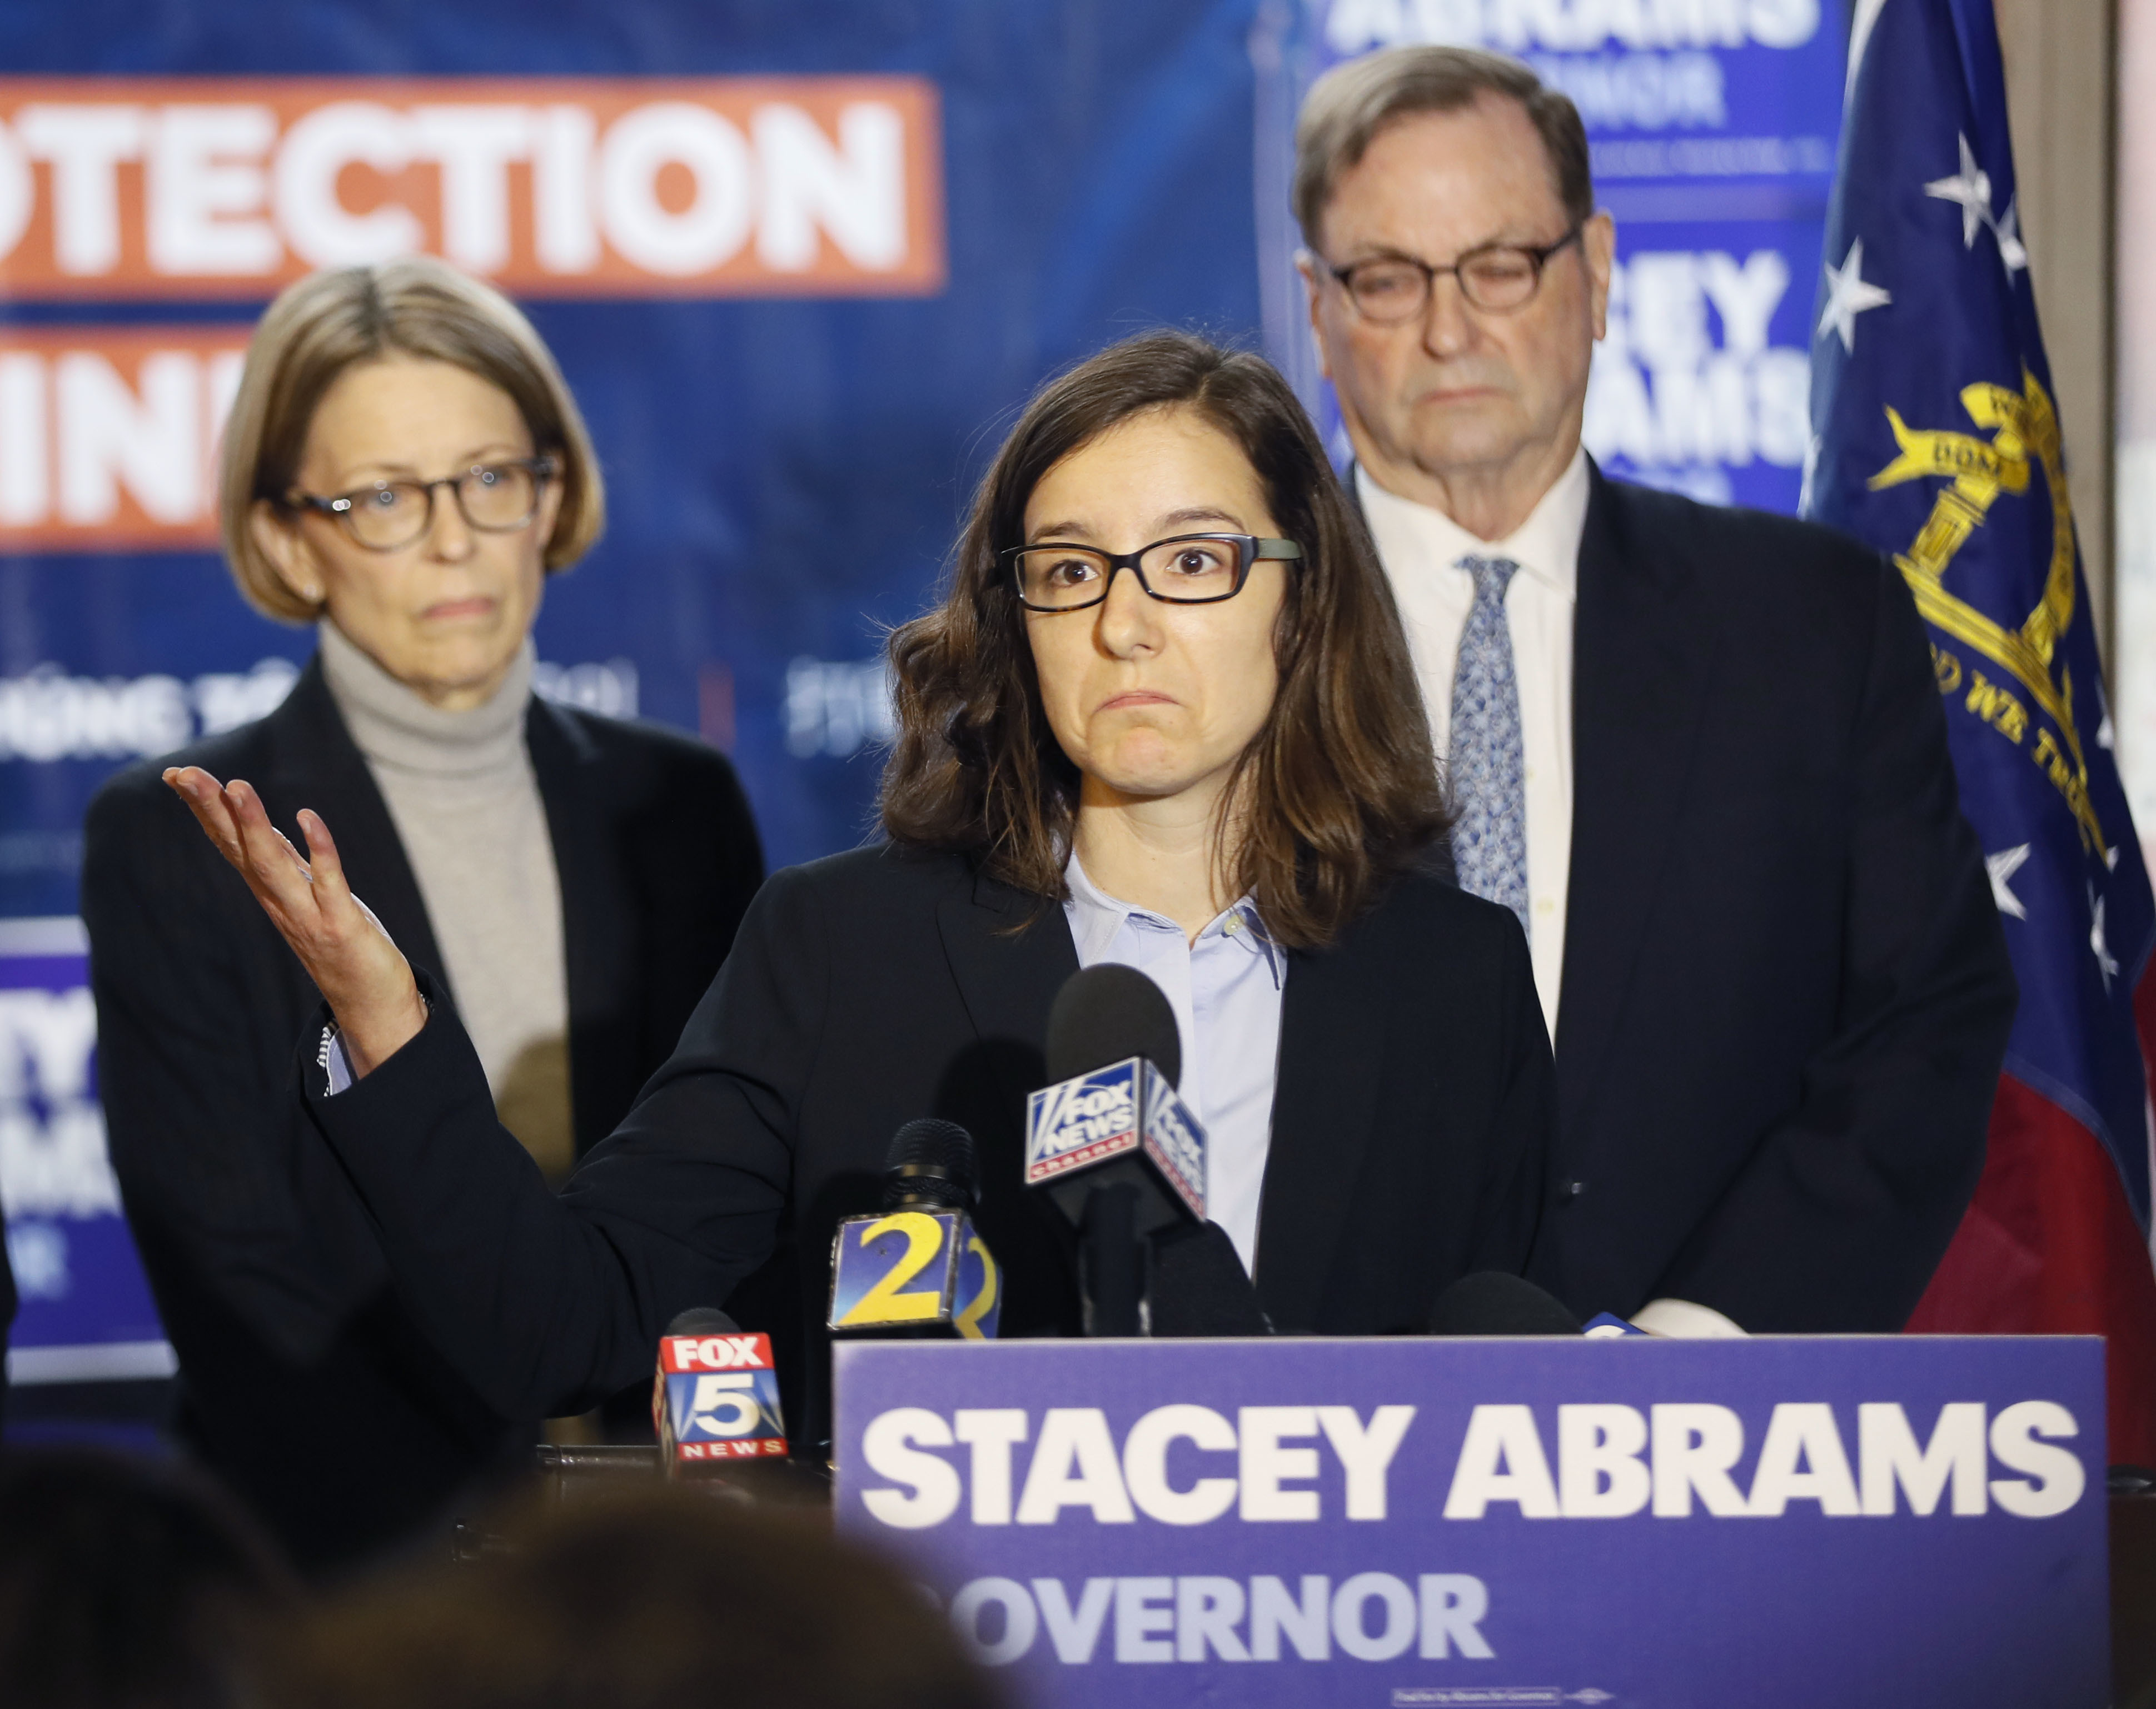 Lauren Groh-Wargo, Stacey Abrams' campaign manager, stands with attorneys at a news conference Thursday, Nov. 8, 2018, in Atlanta. Republican Brian Kemp resigned Thursday as Georgia's secretary of state, a day after his campaign said he's captured enough votes to become governor despite his rival's refusal to concede. Abrams' campaign immediately responded by refusing to accept Kemp's declaration of victory in the race and demanding that state officials